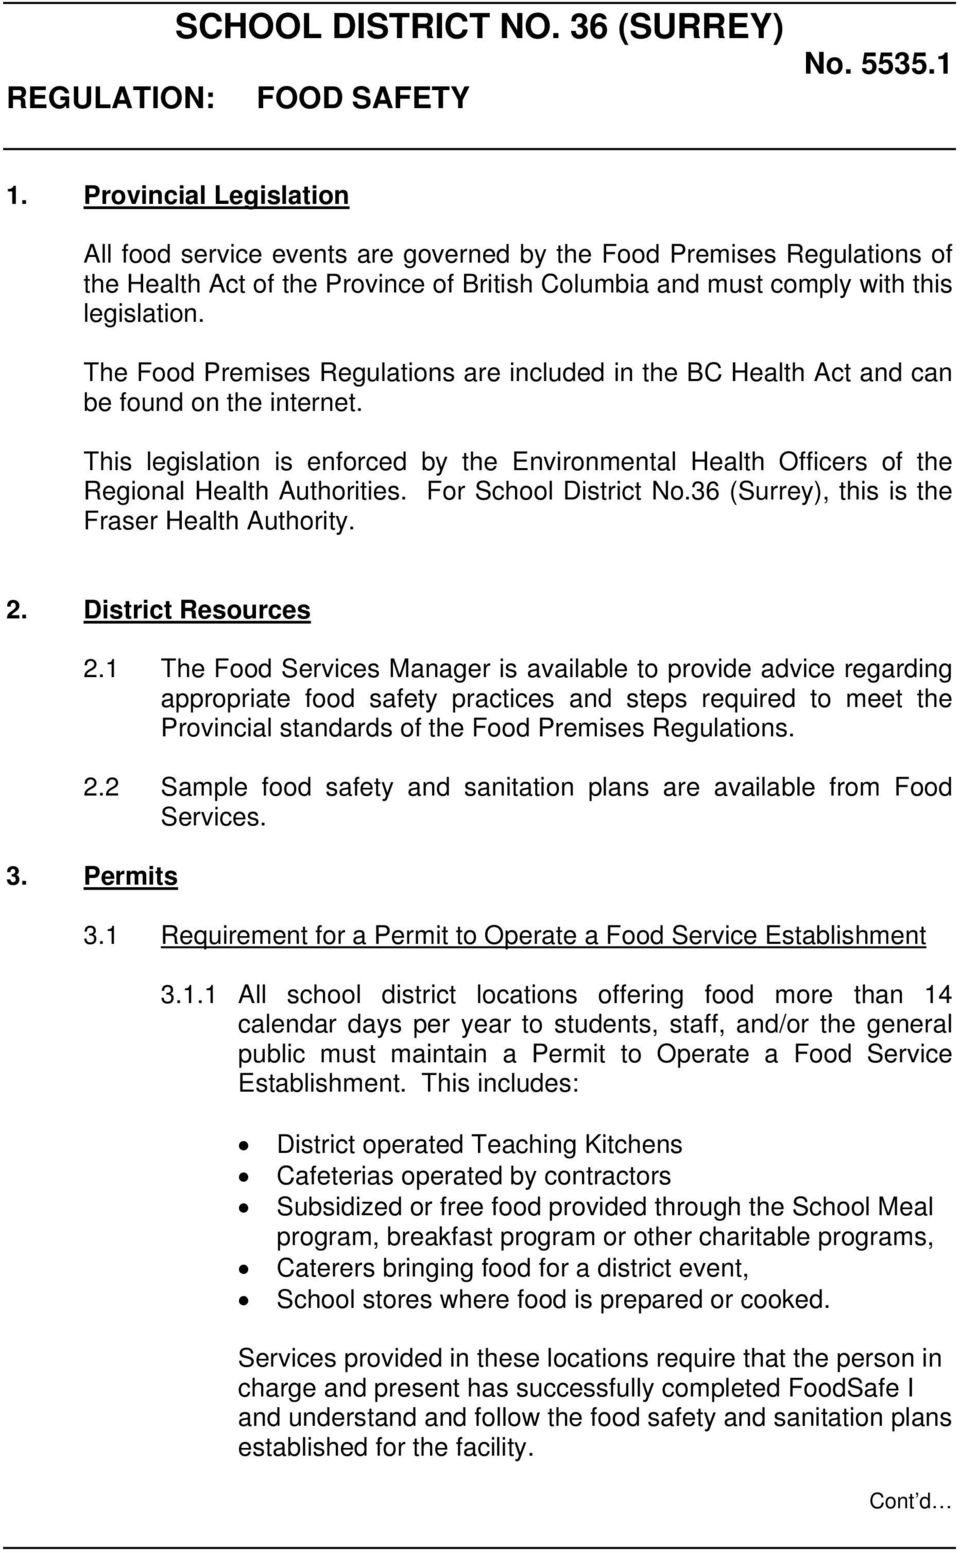 The Food Premises Regulations are included in the BC Health Act and can be found on the internet. This legislation is enforced by the Environmental Health Officers of the Regional Health Authorities.